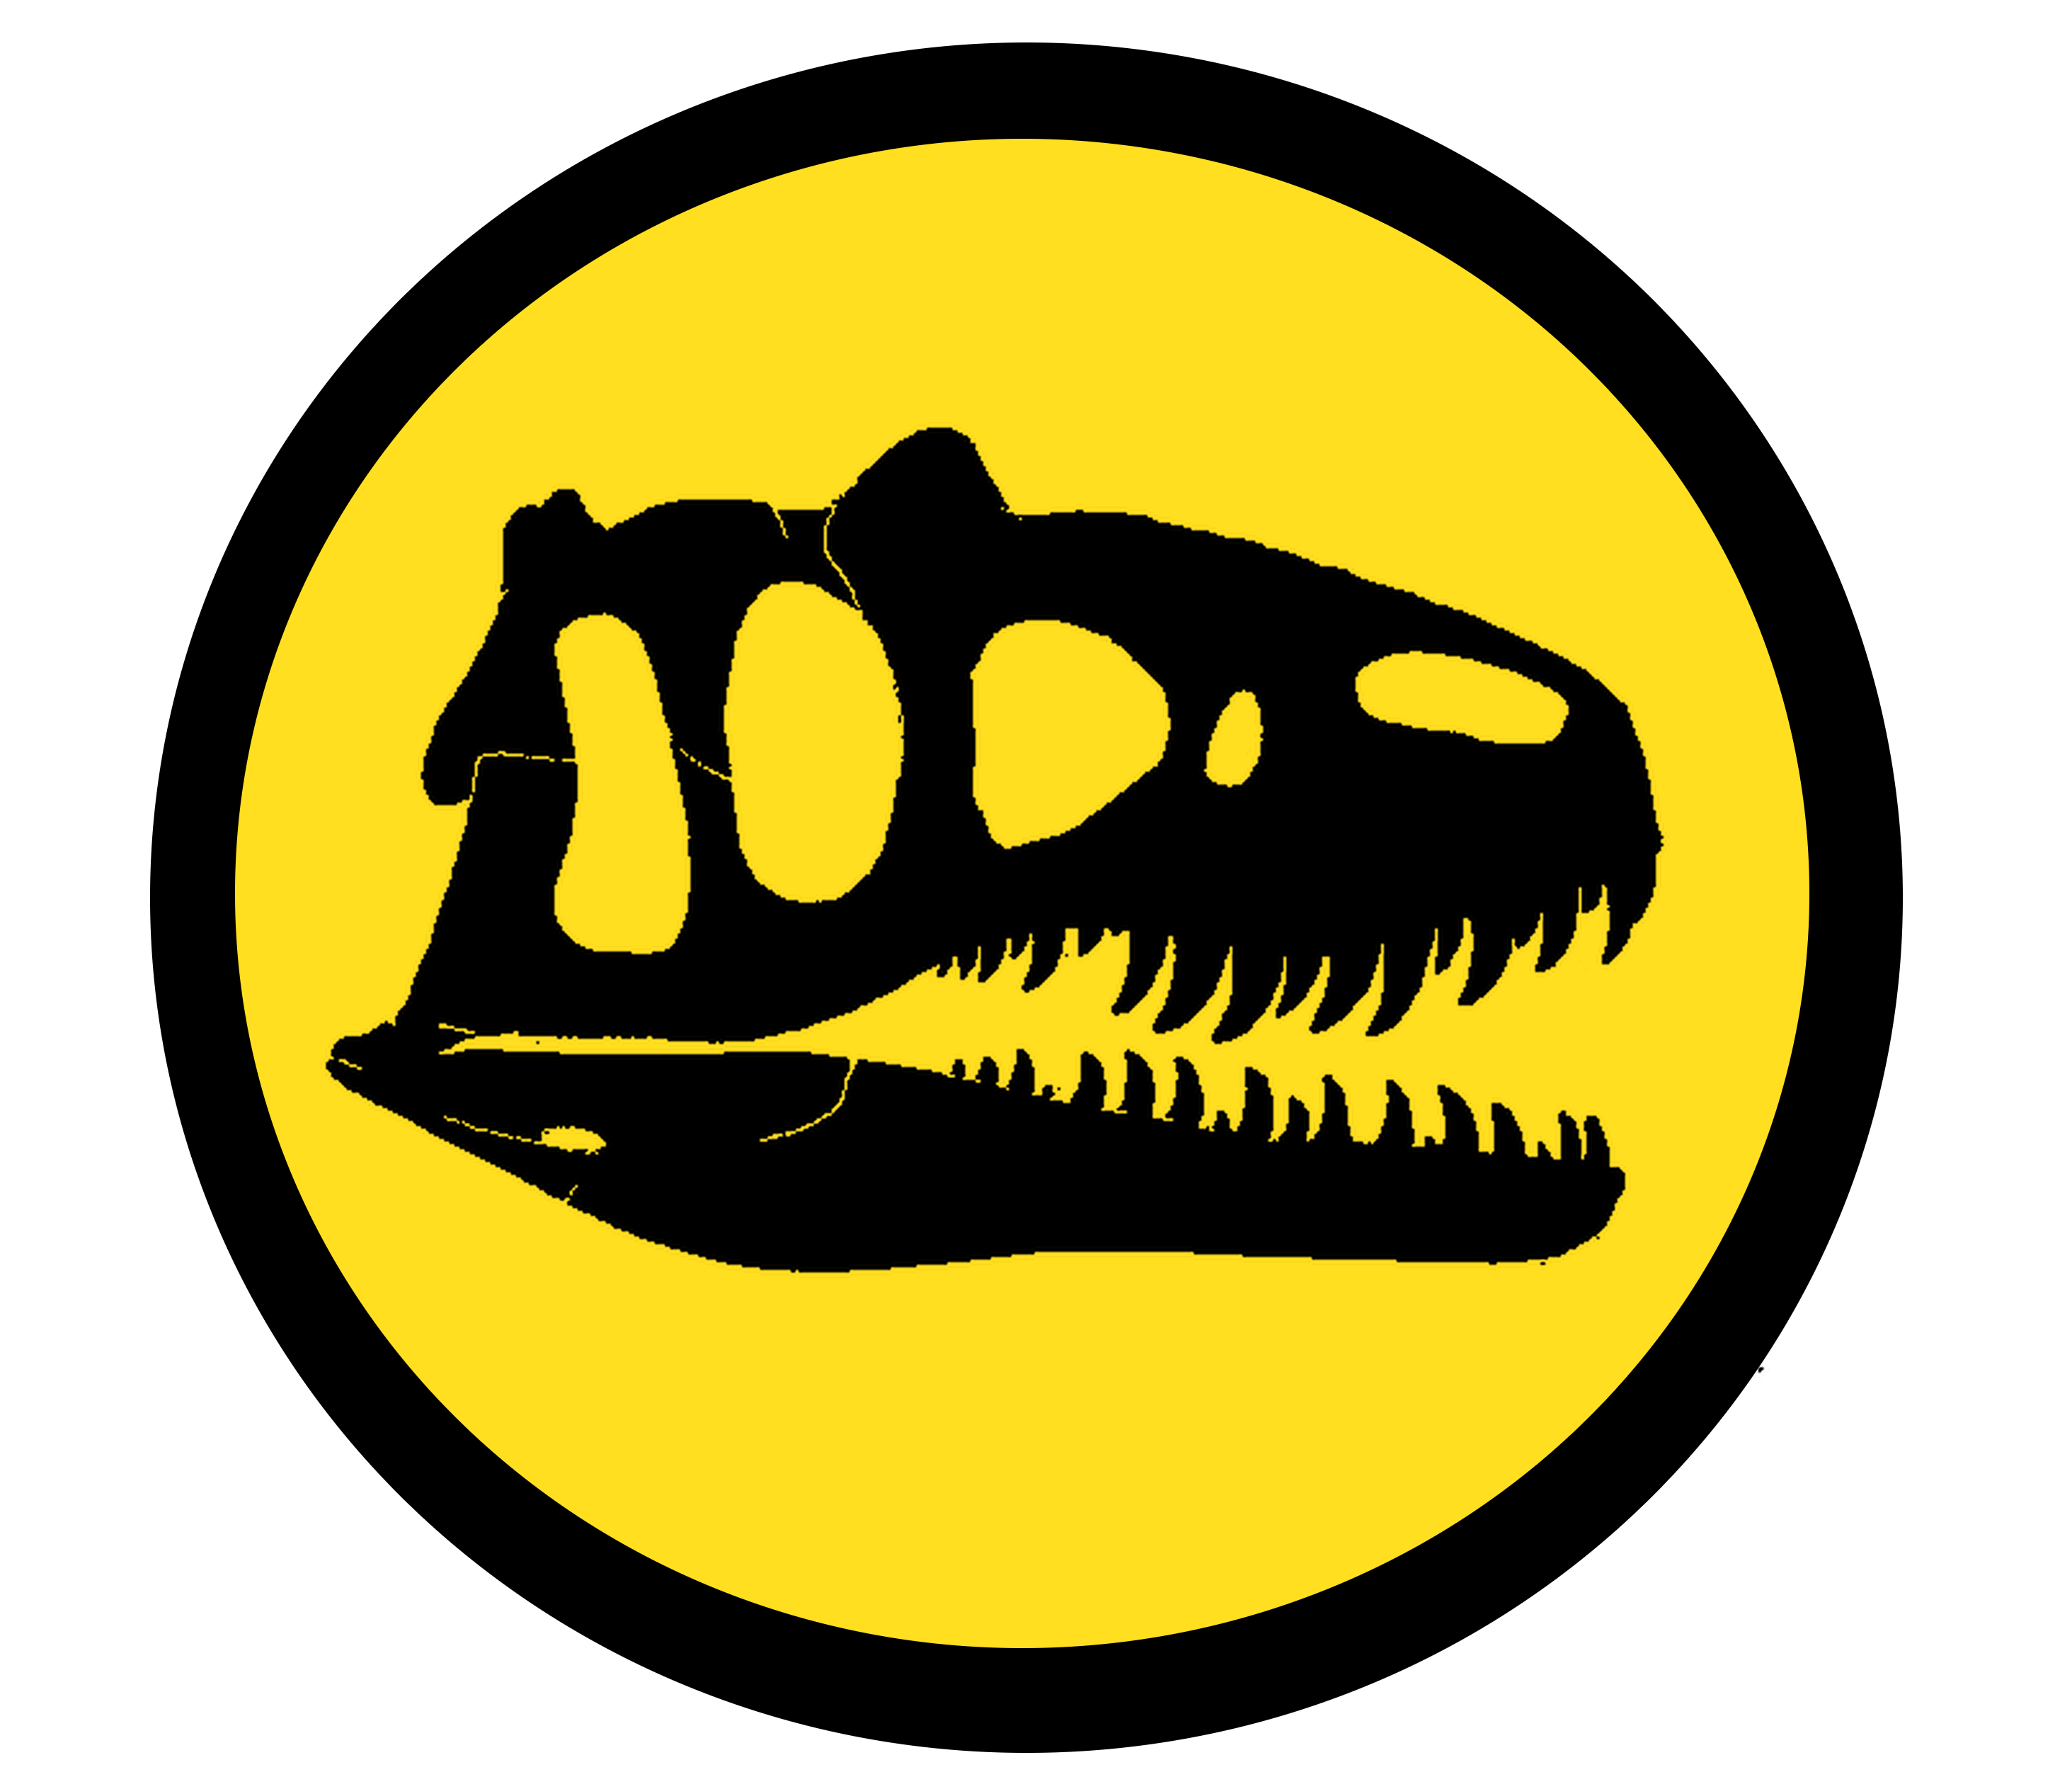 jurassic park movies png logo